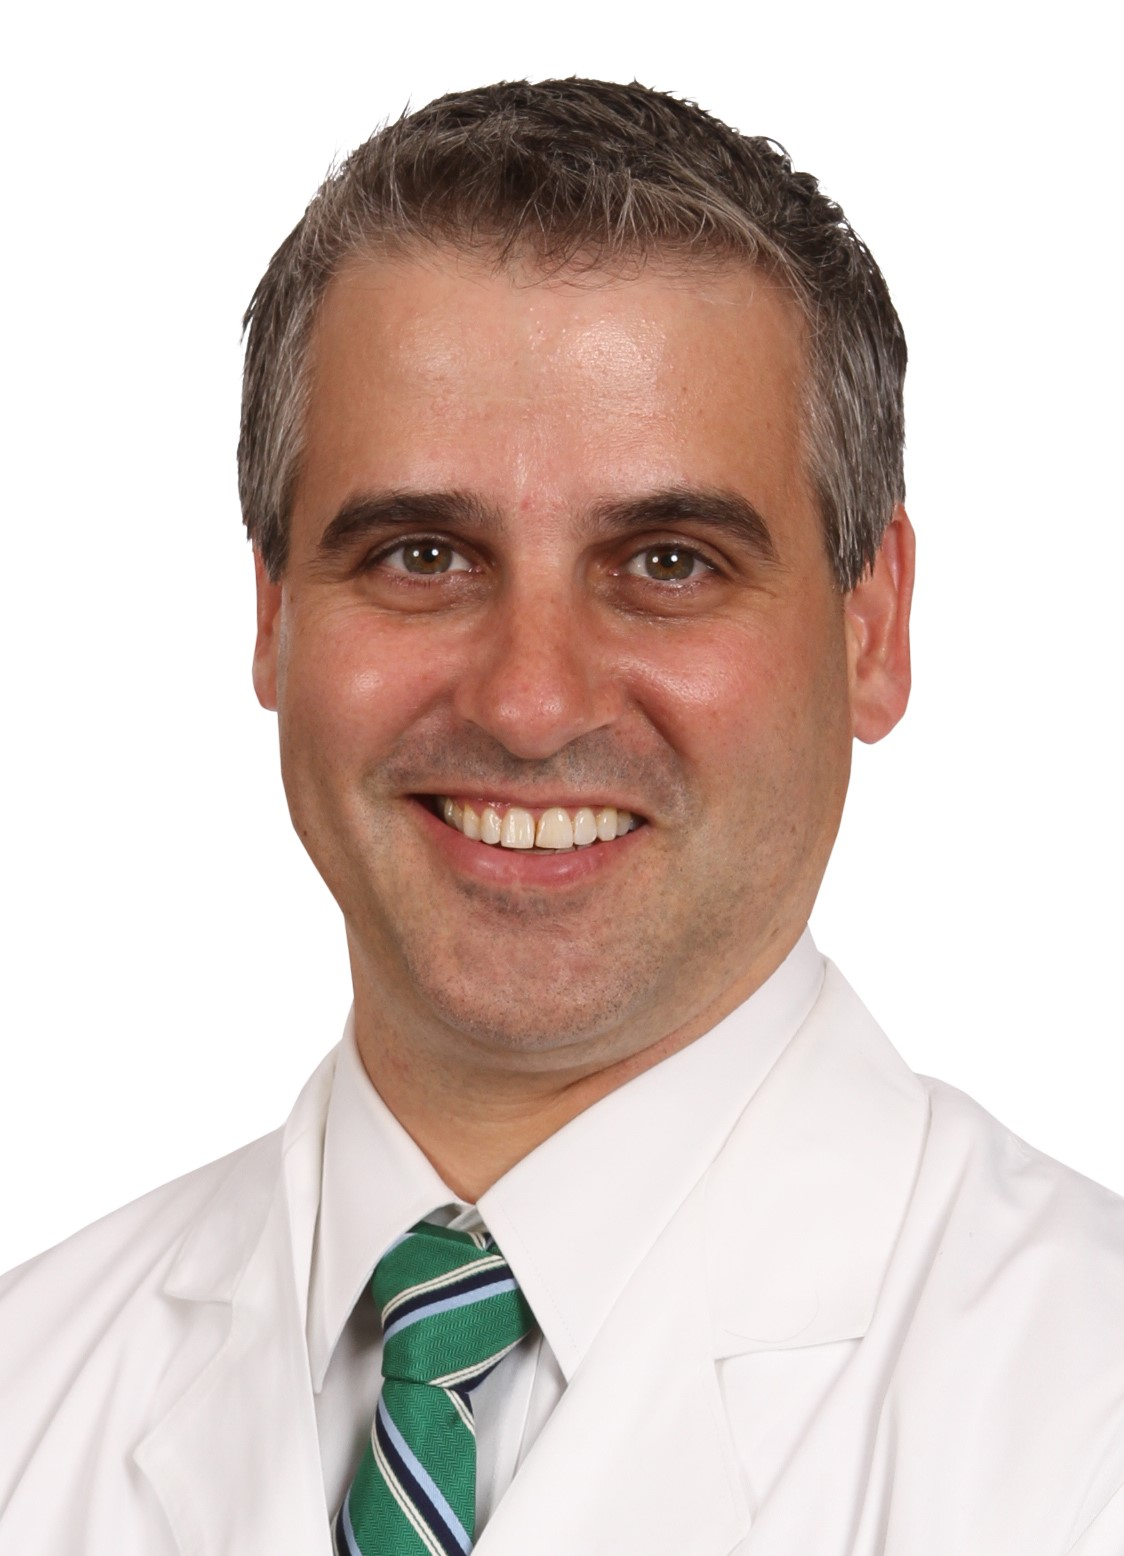 Eric Young, M.D. '05, Res. '10